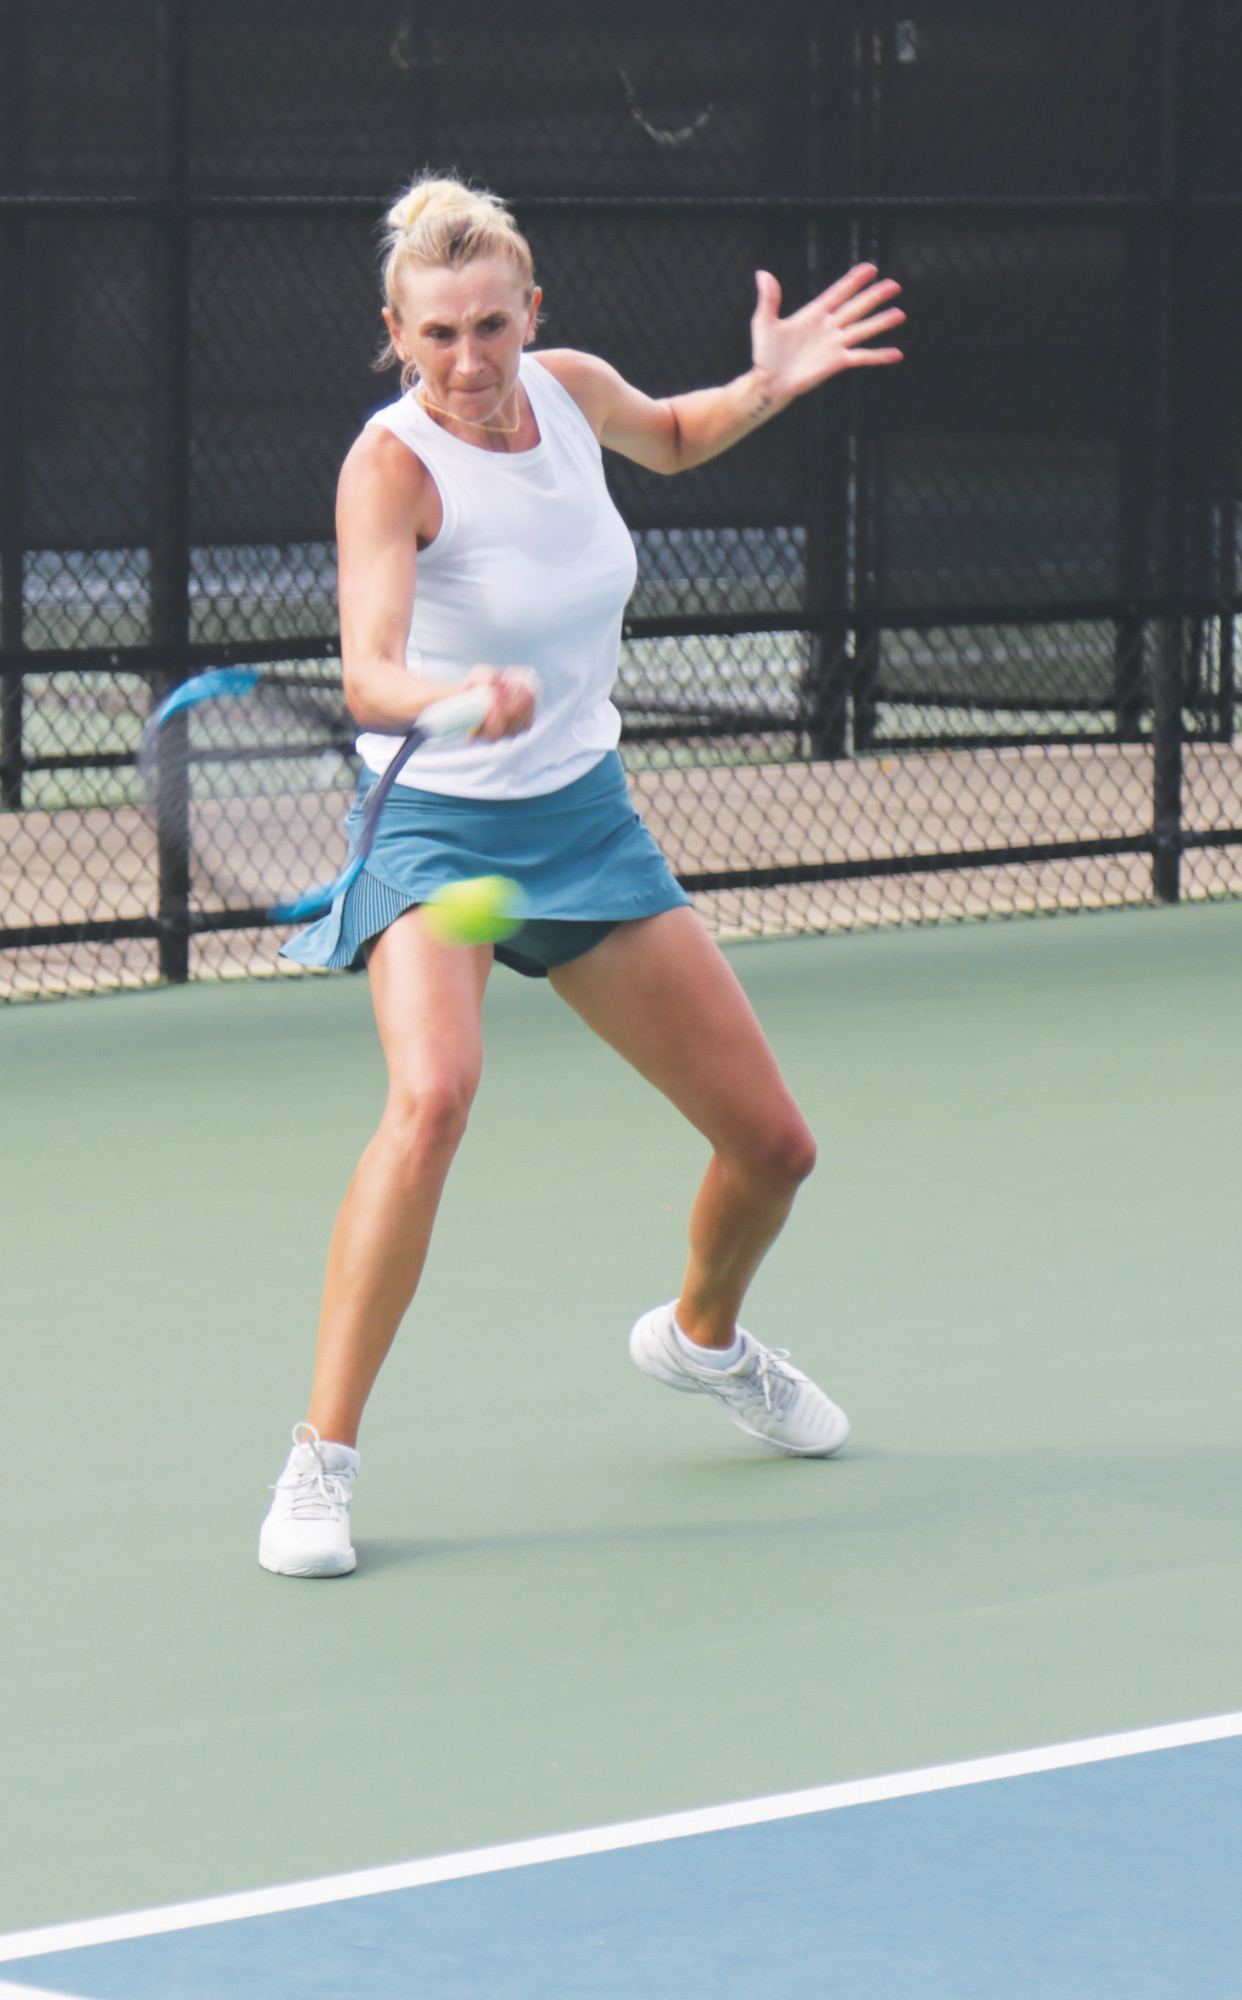 Olga Govortsova hits a forehand return in her 7-6(3), 7-5 victory over Adriana Reami on Monday in the second round of the qualifying draw of the Palmetto Pro Open at Palmetto Tennis Center.